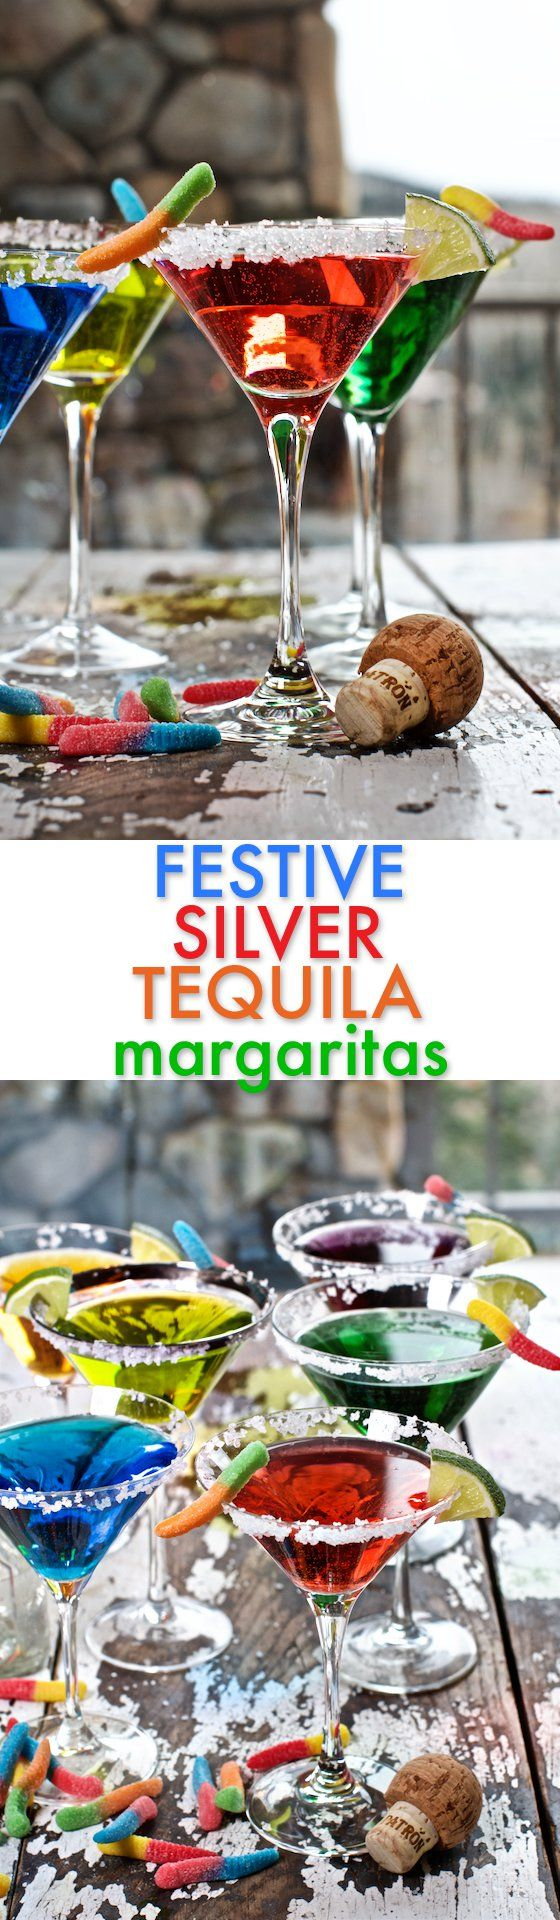 Festive Silver Tequila Margaritas! This Holiday Cocktail Recipe can be custom…